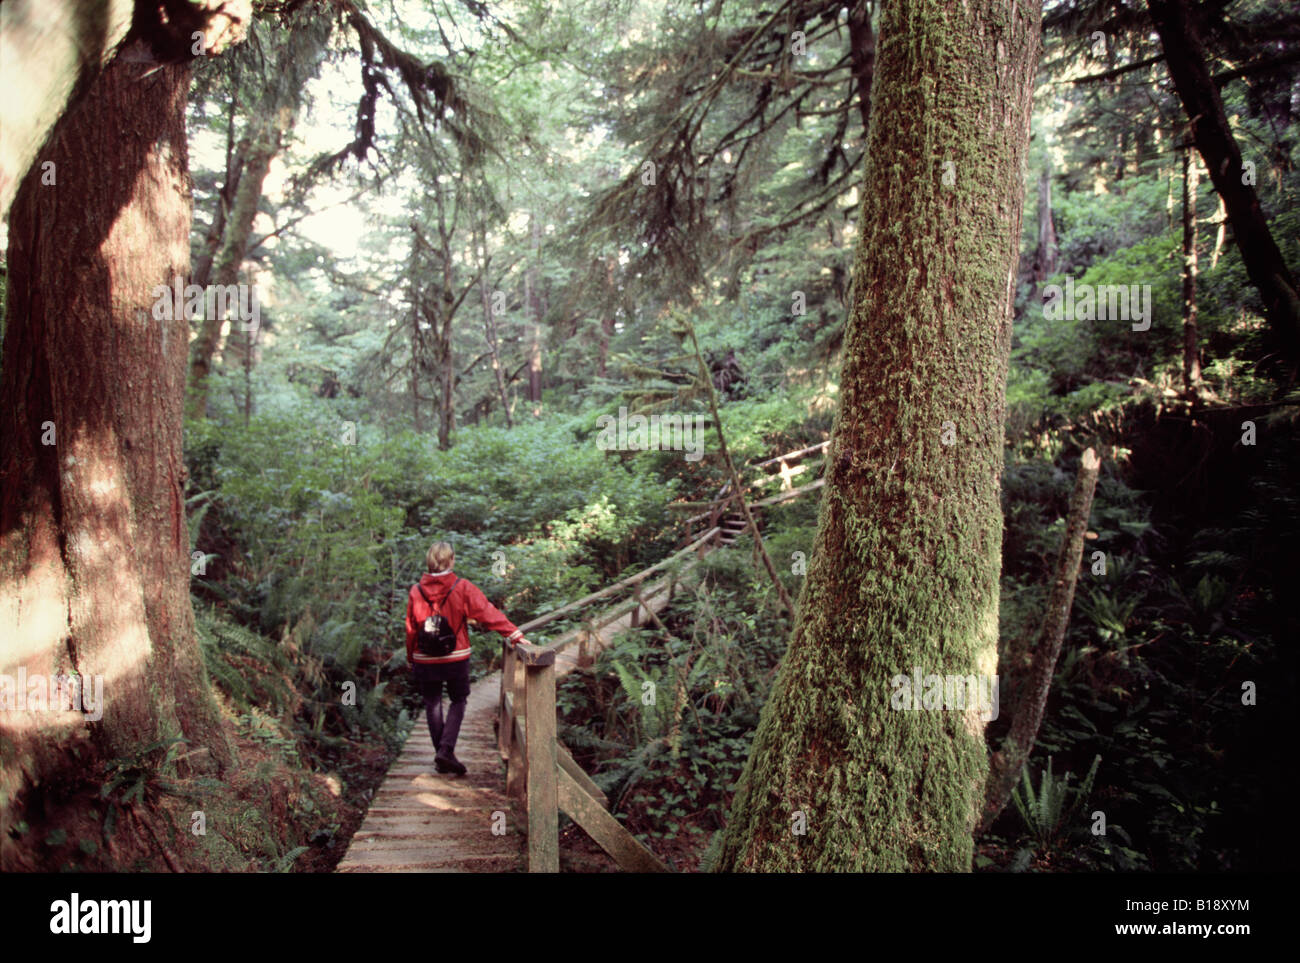 20 year old Young woman walking on the boardwalk through the forest towards the beach, Schooner Bay, Vancouver Island, - Stock Image